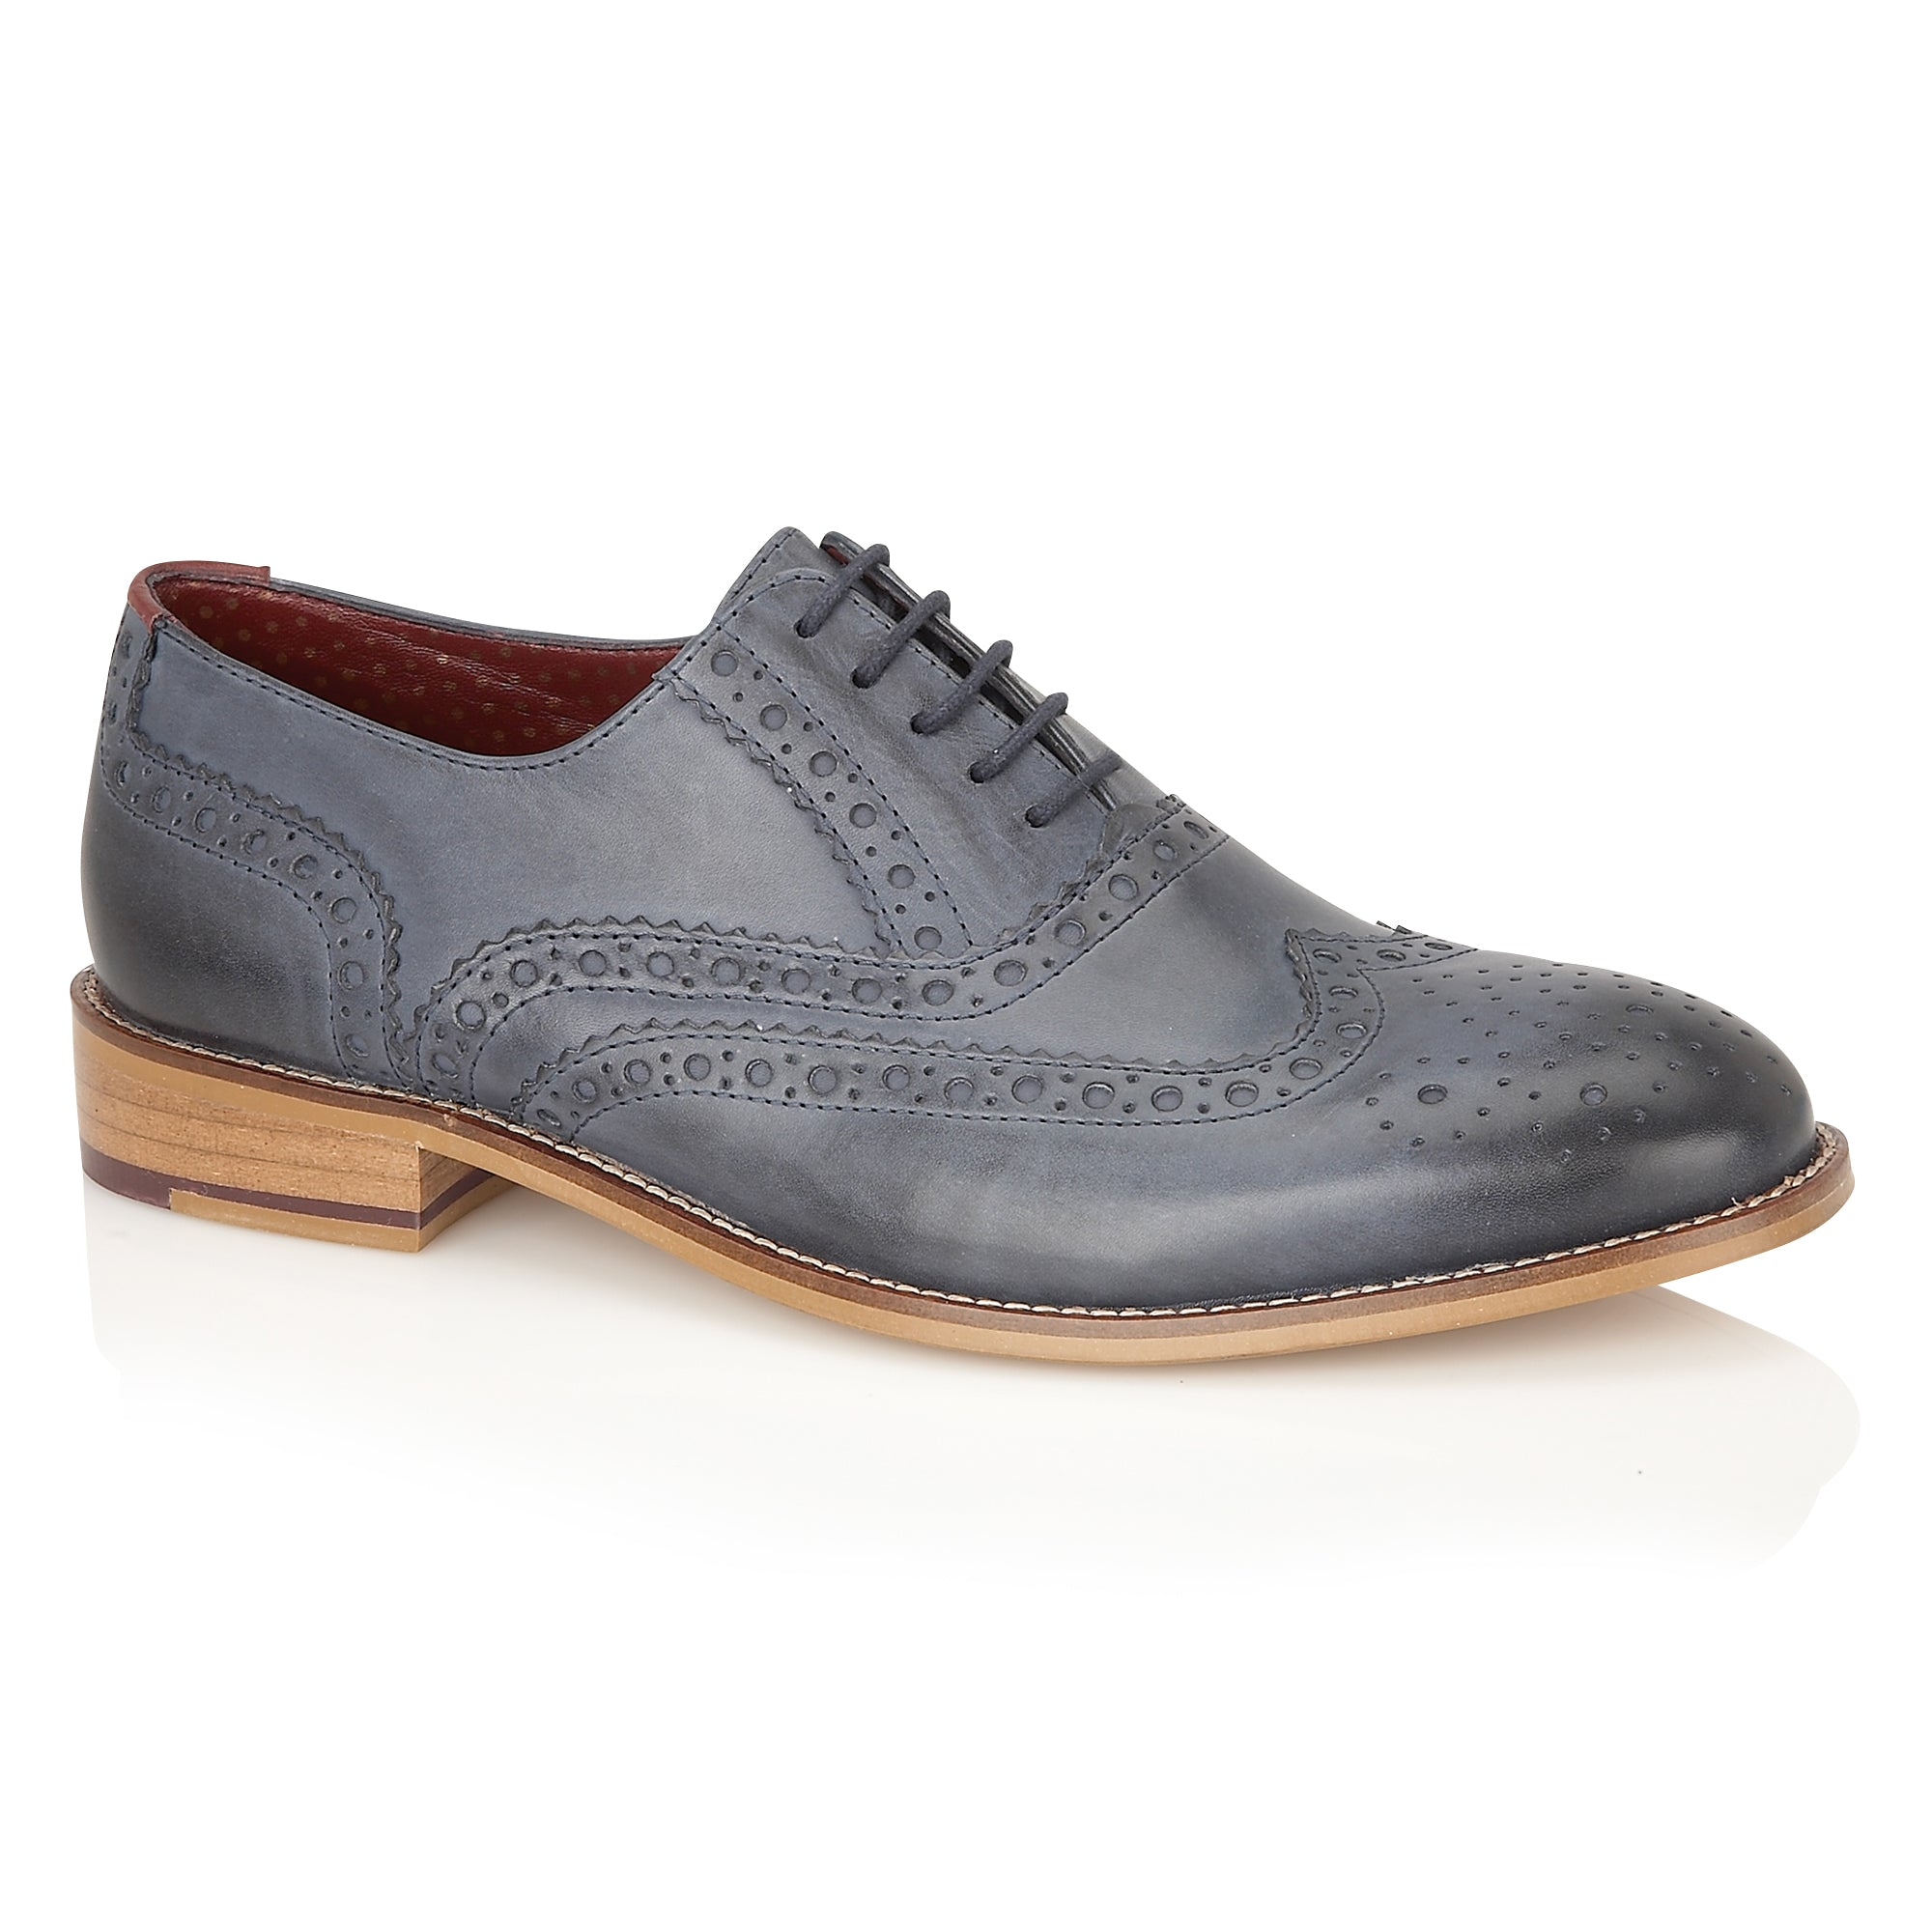 Gatsby Leather Brogue Navy - Wide Fit